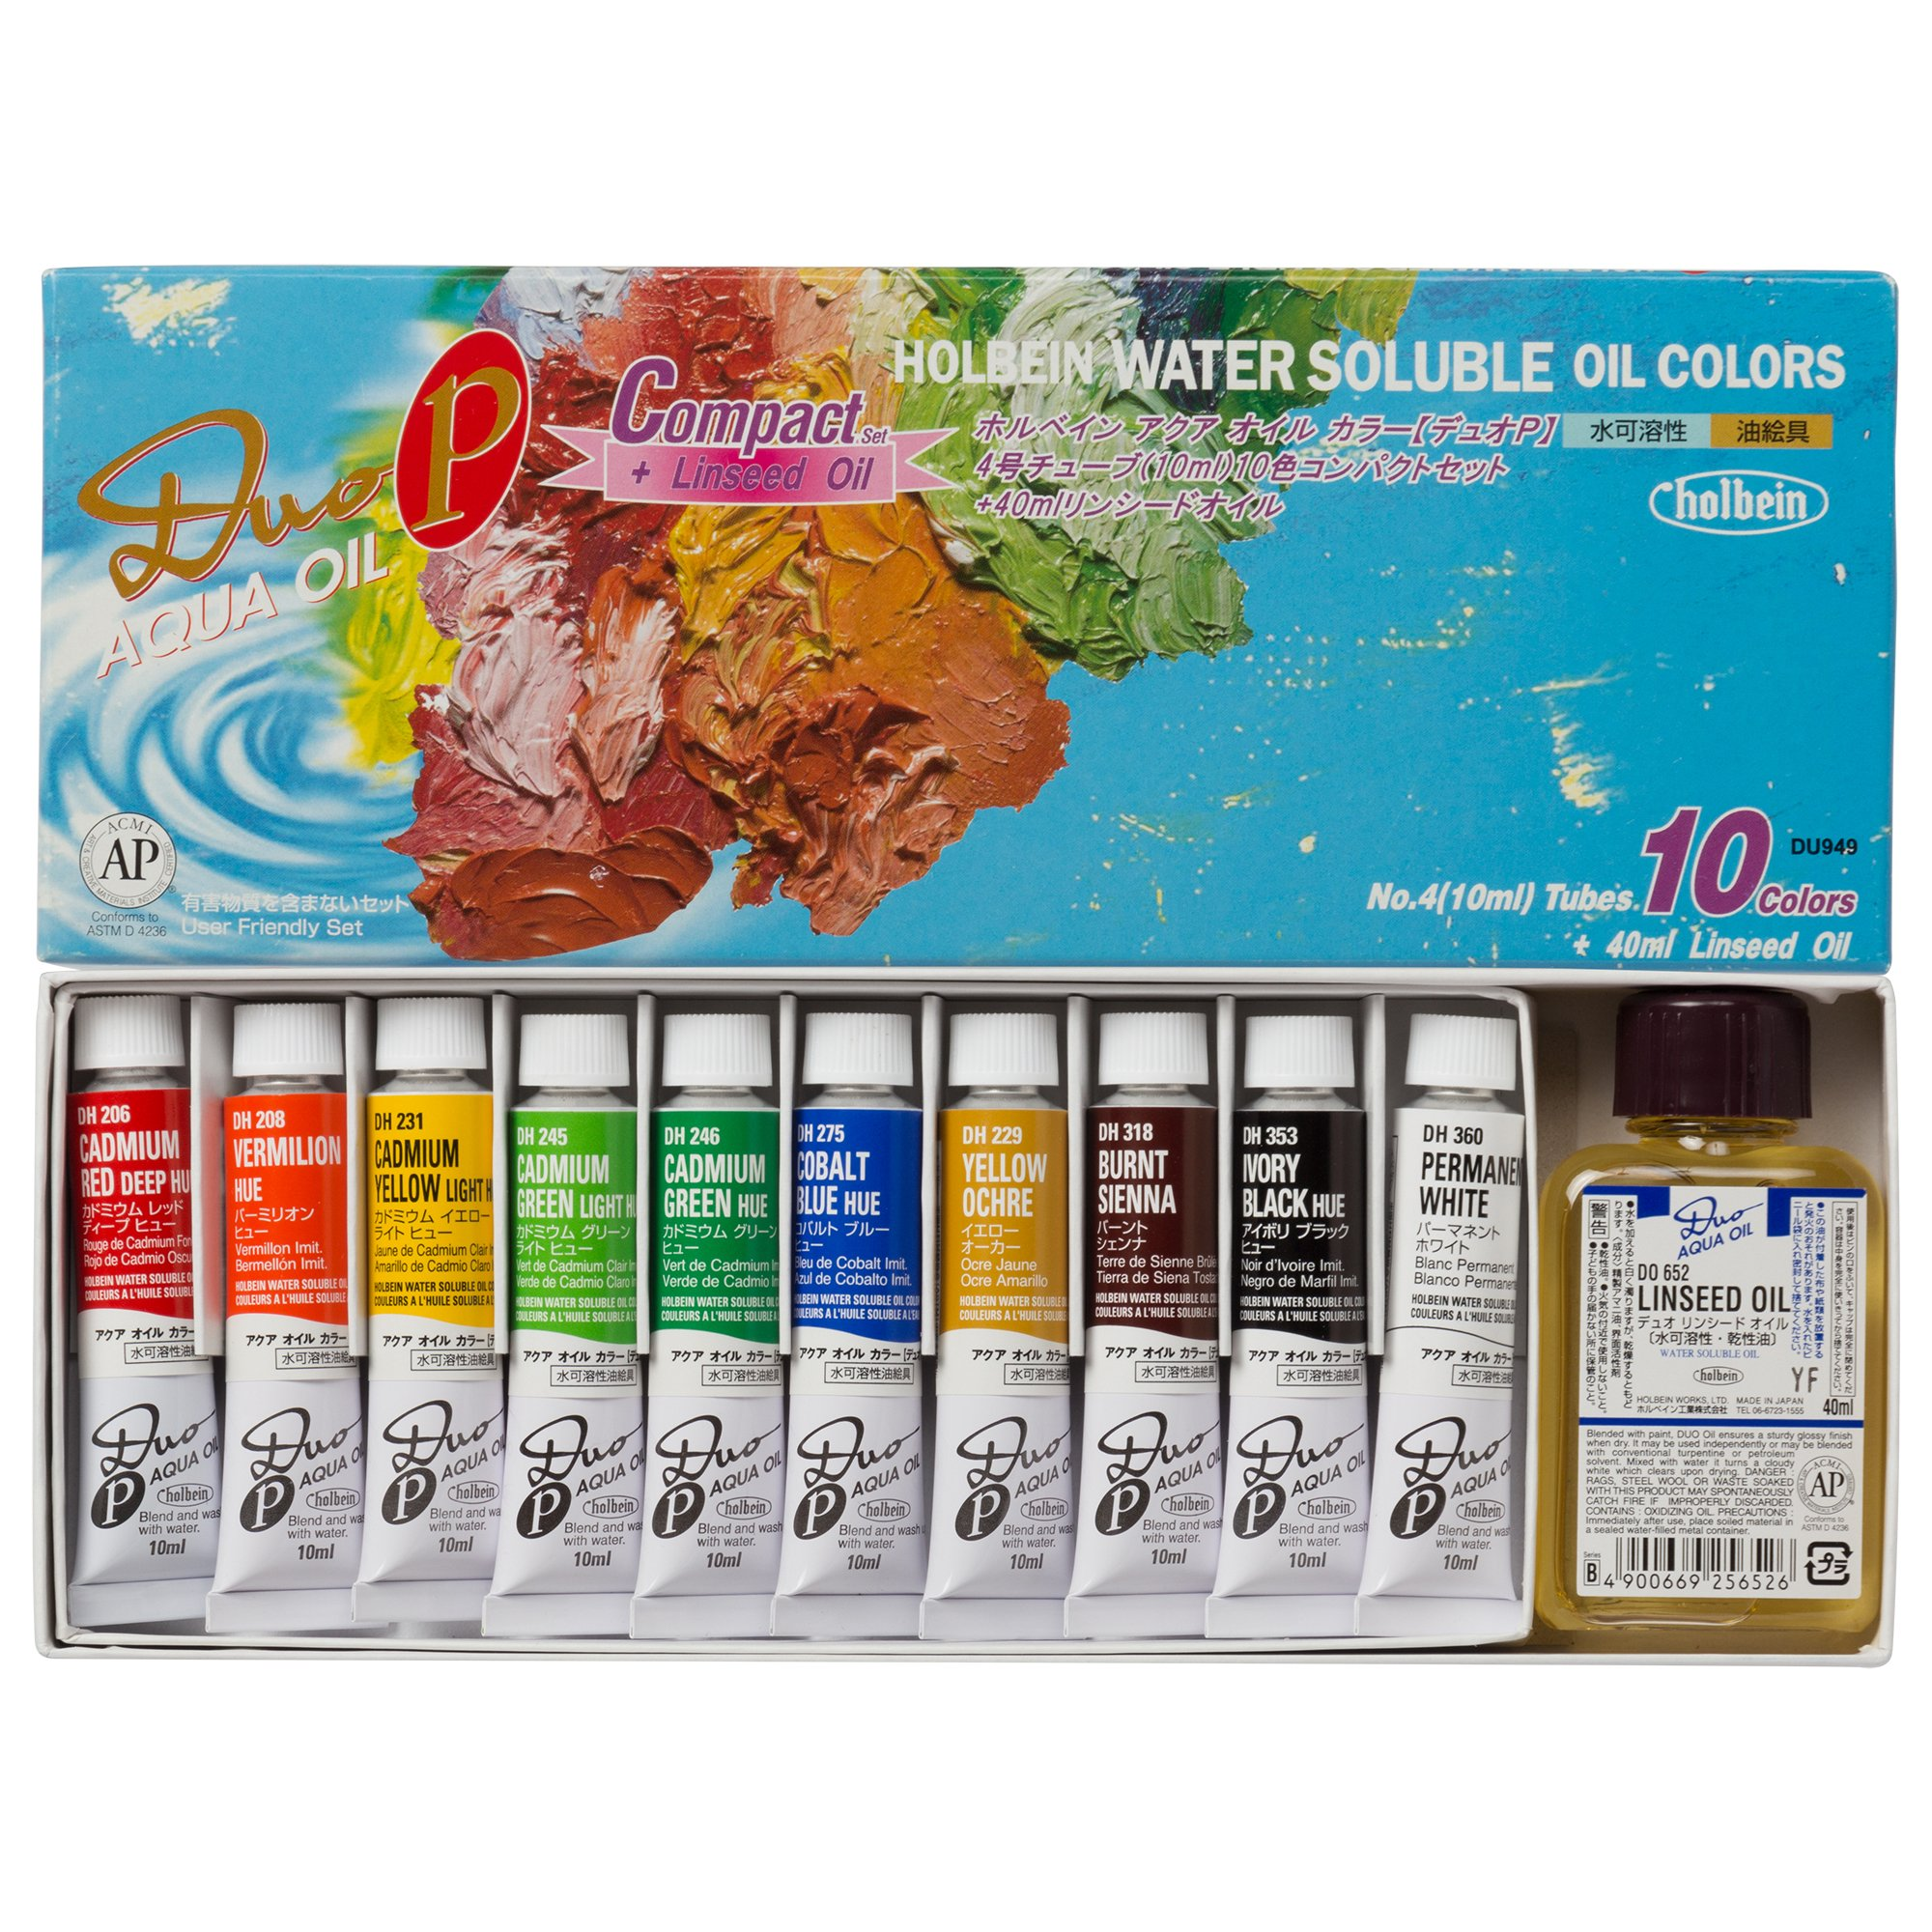 Holbein Duo Aqua Oil Compact Set of 10, 10ml tubes + 40ml Linseed Oil